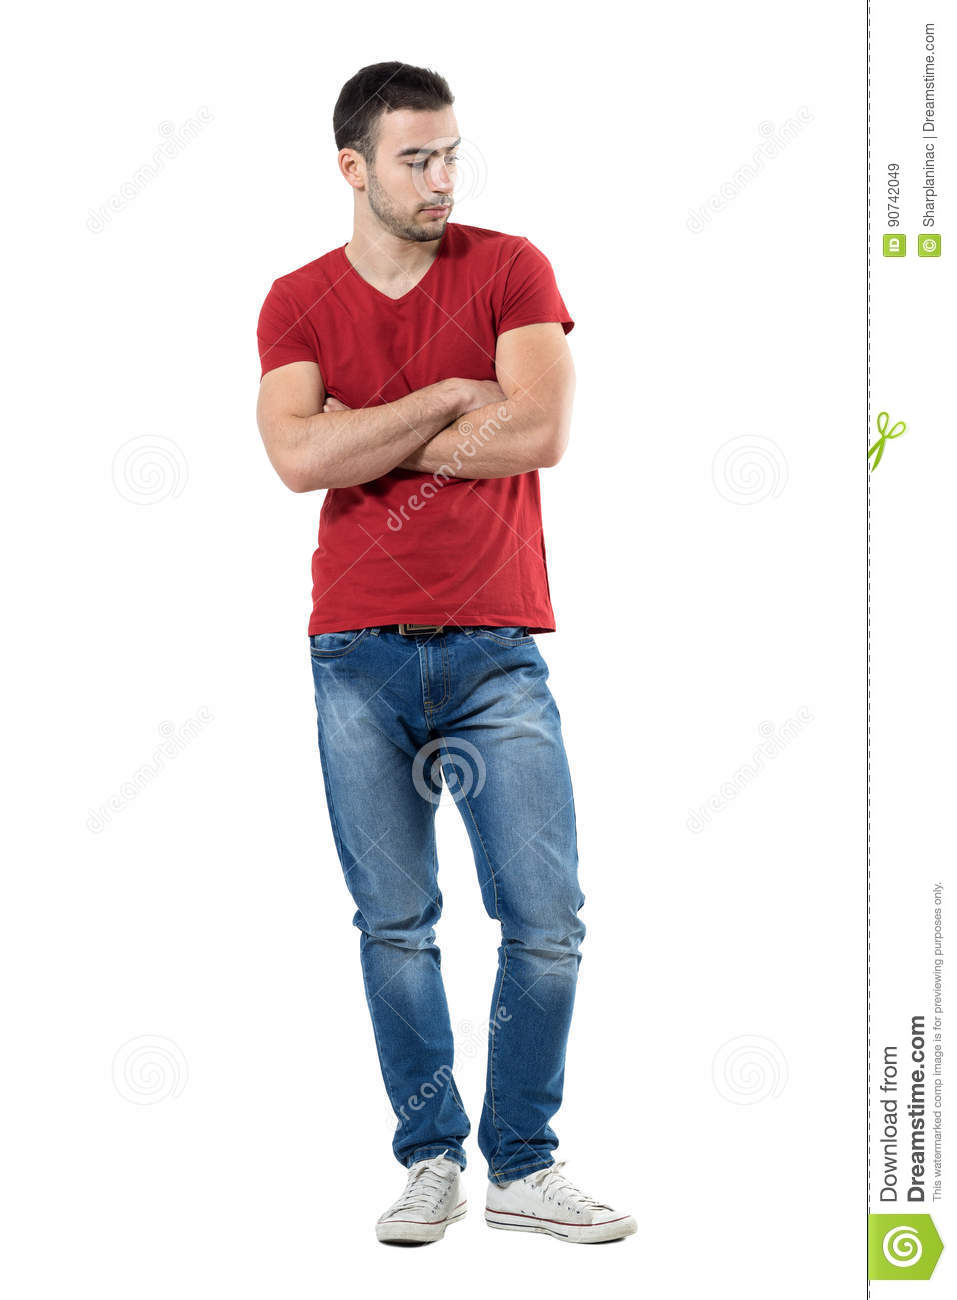 Sad pensive young man with crossed arms looking down